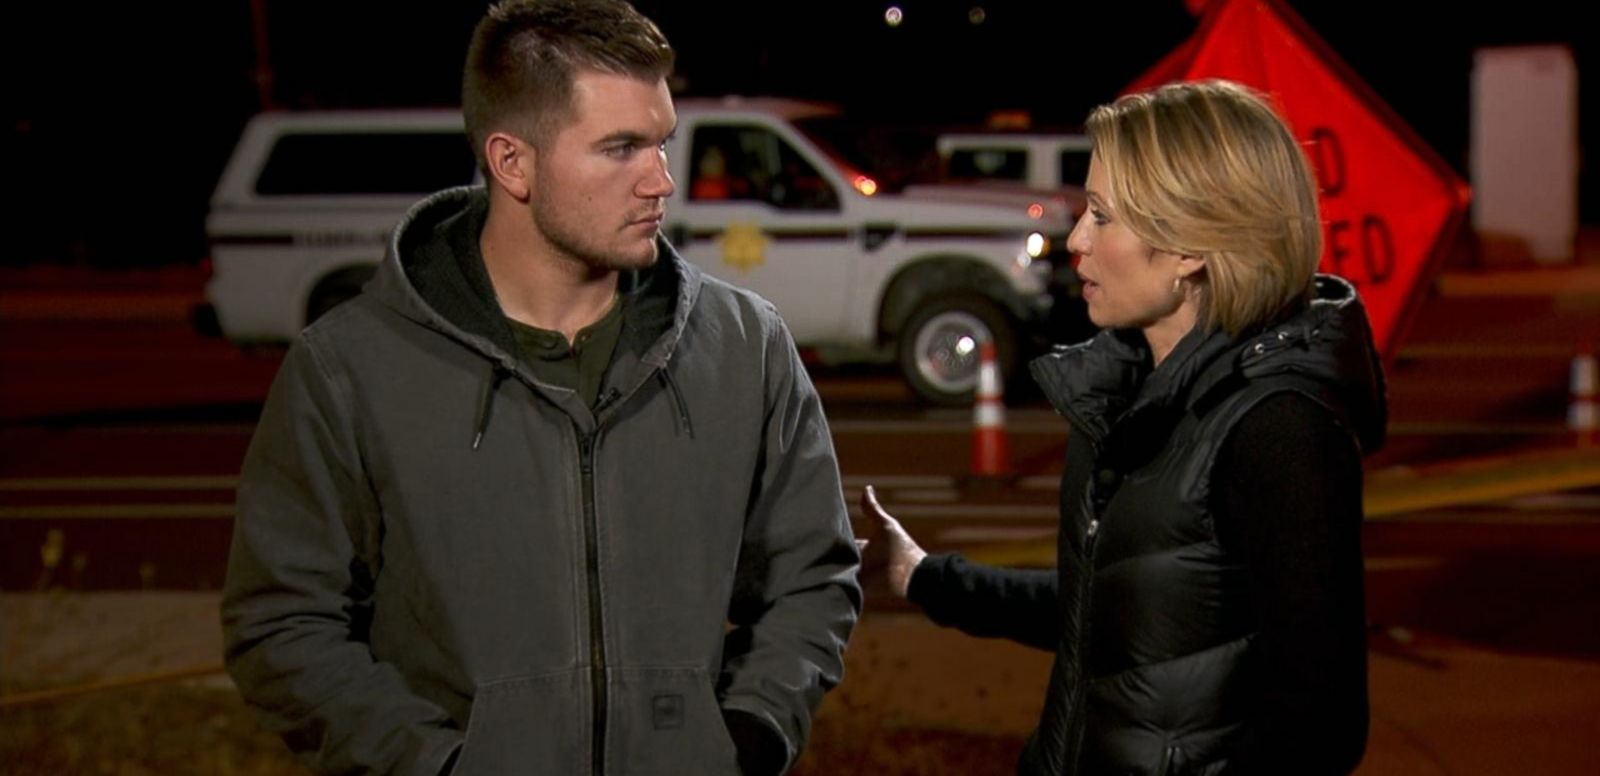 VIDEO: Hero Alek Skarlatos Connection to Oregon College Shooting